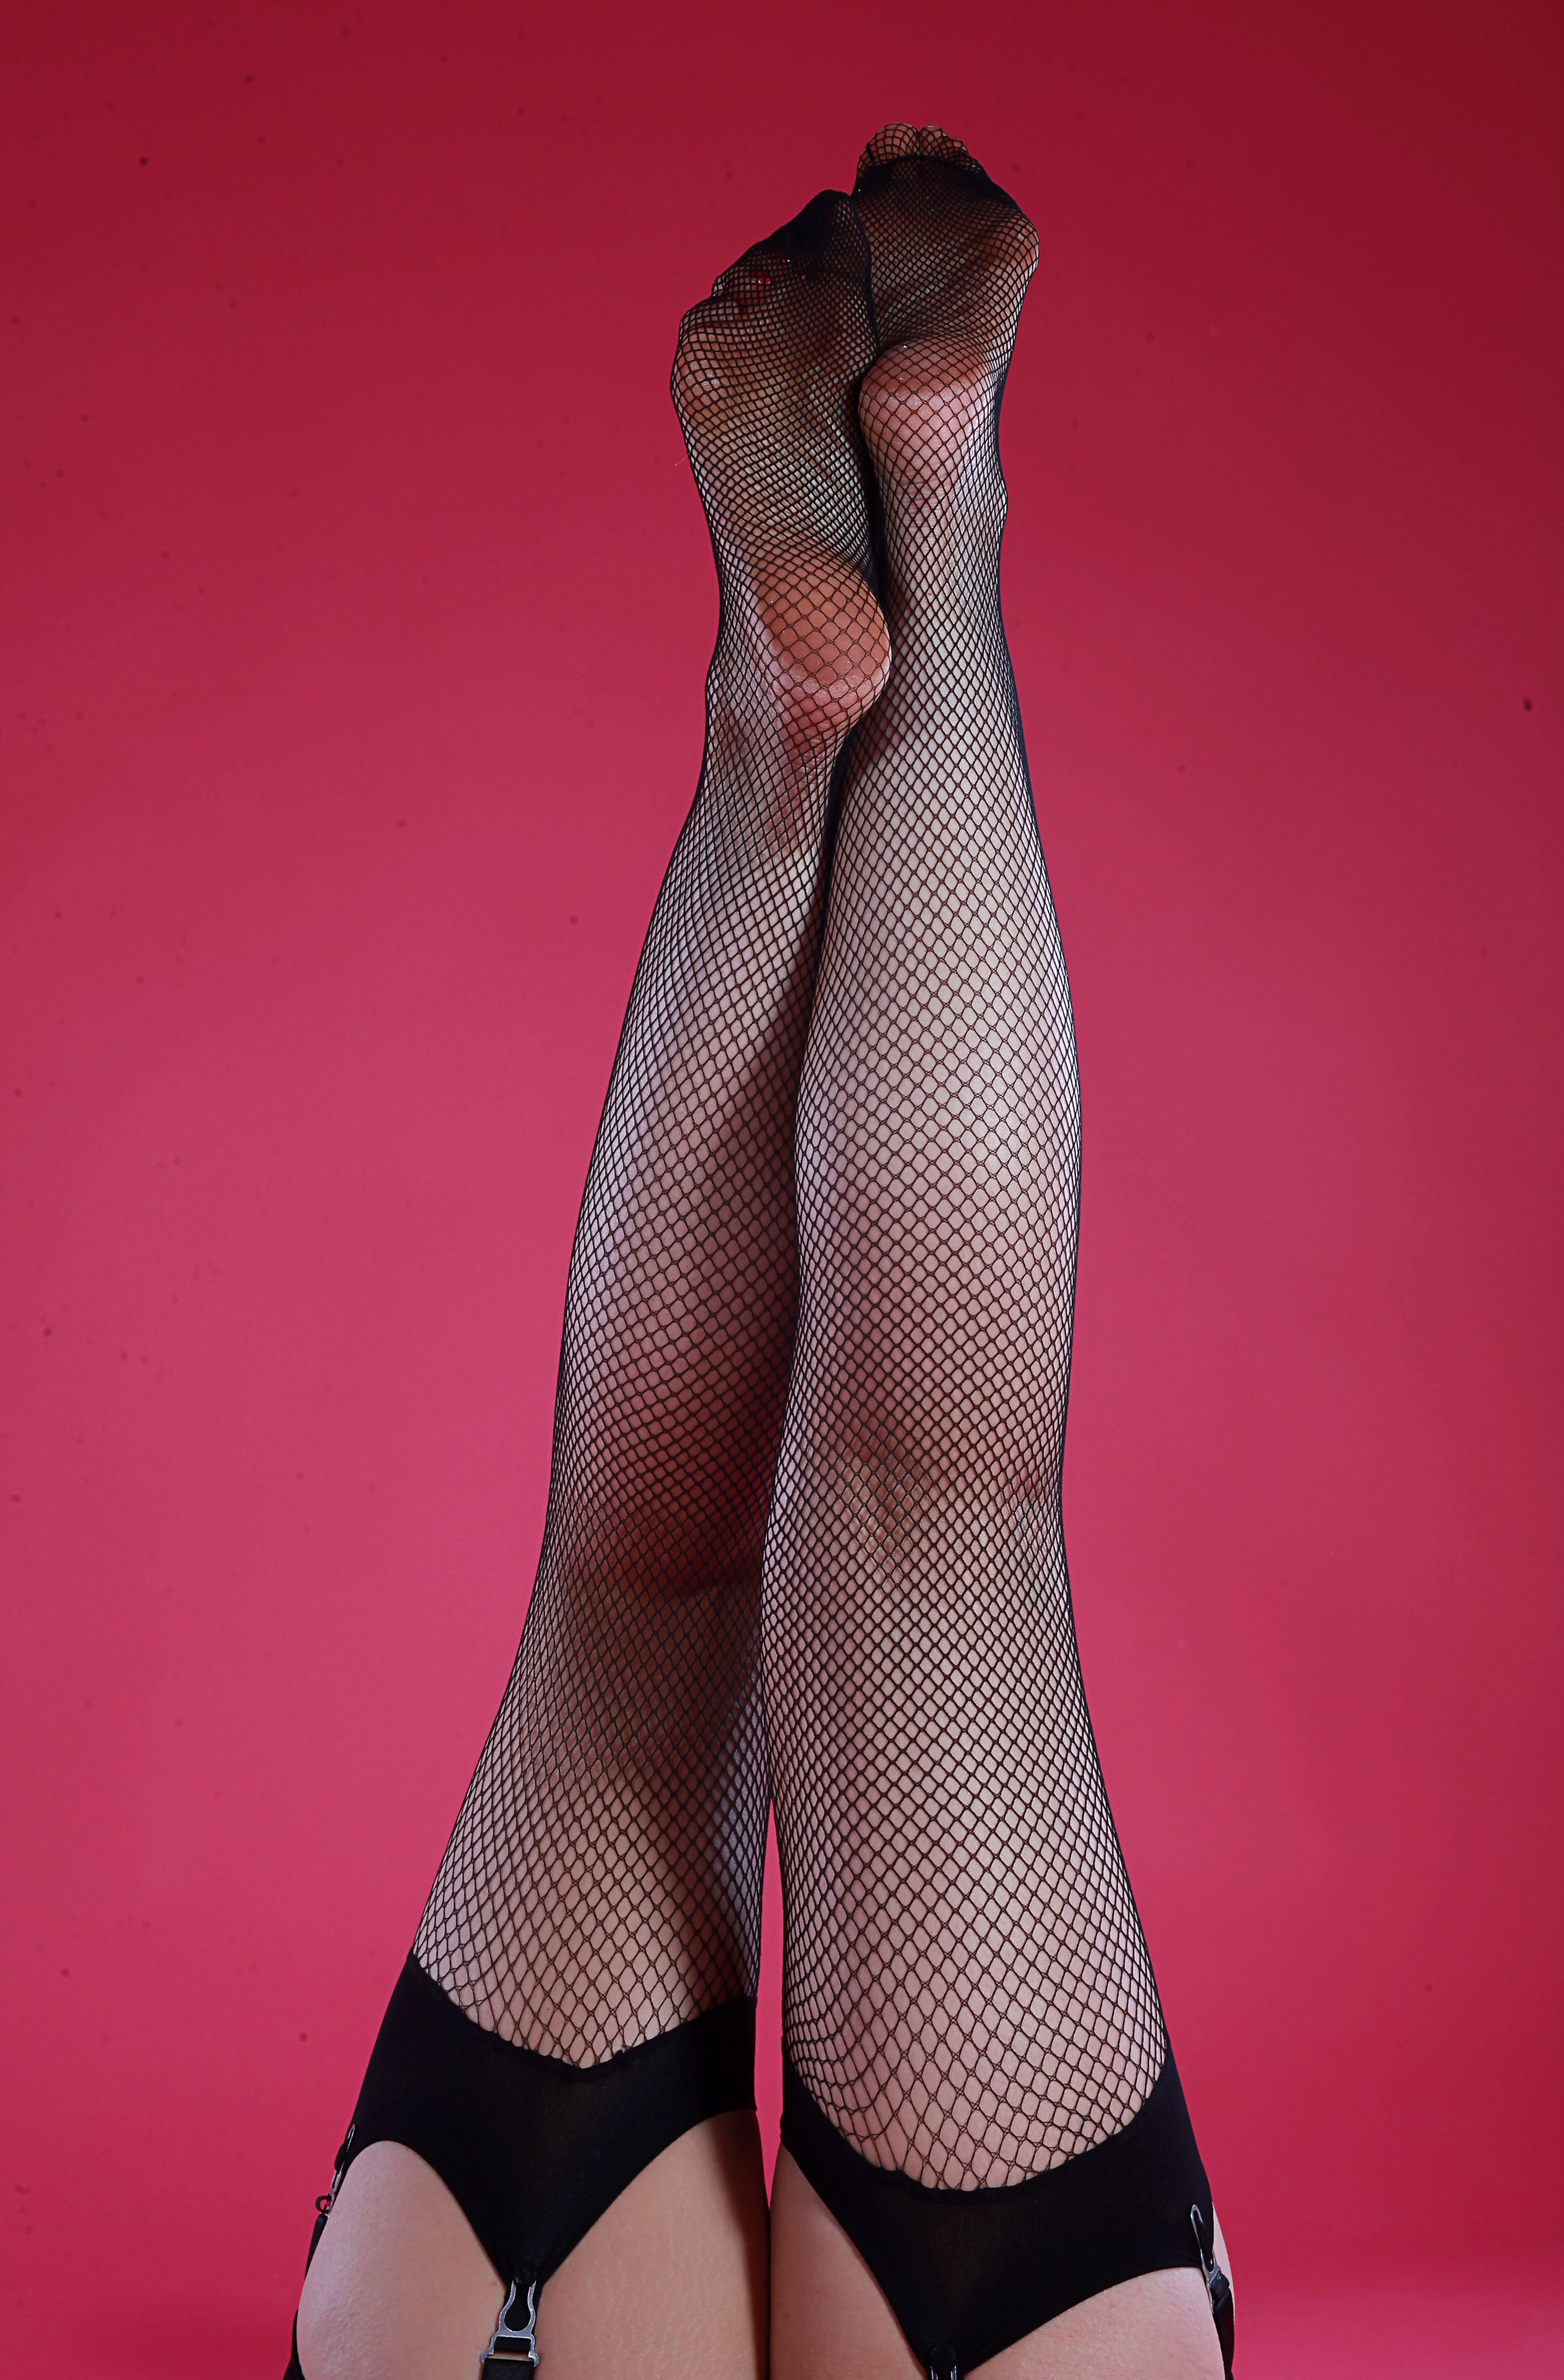 12b5c7db9 Black fishnet stockings. High quality nylons and a staple vintage item for  all pin up wardrobes. Wear with a girdle